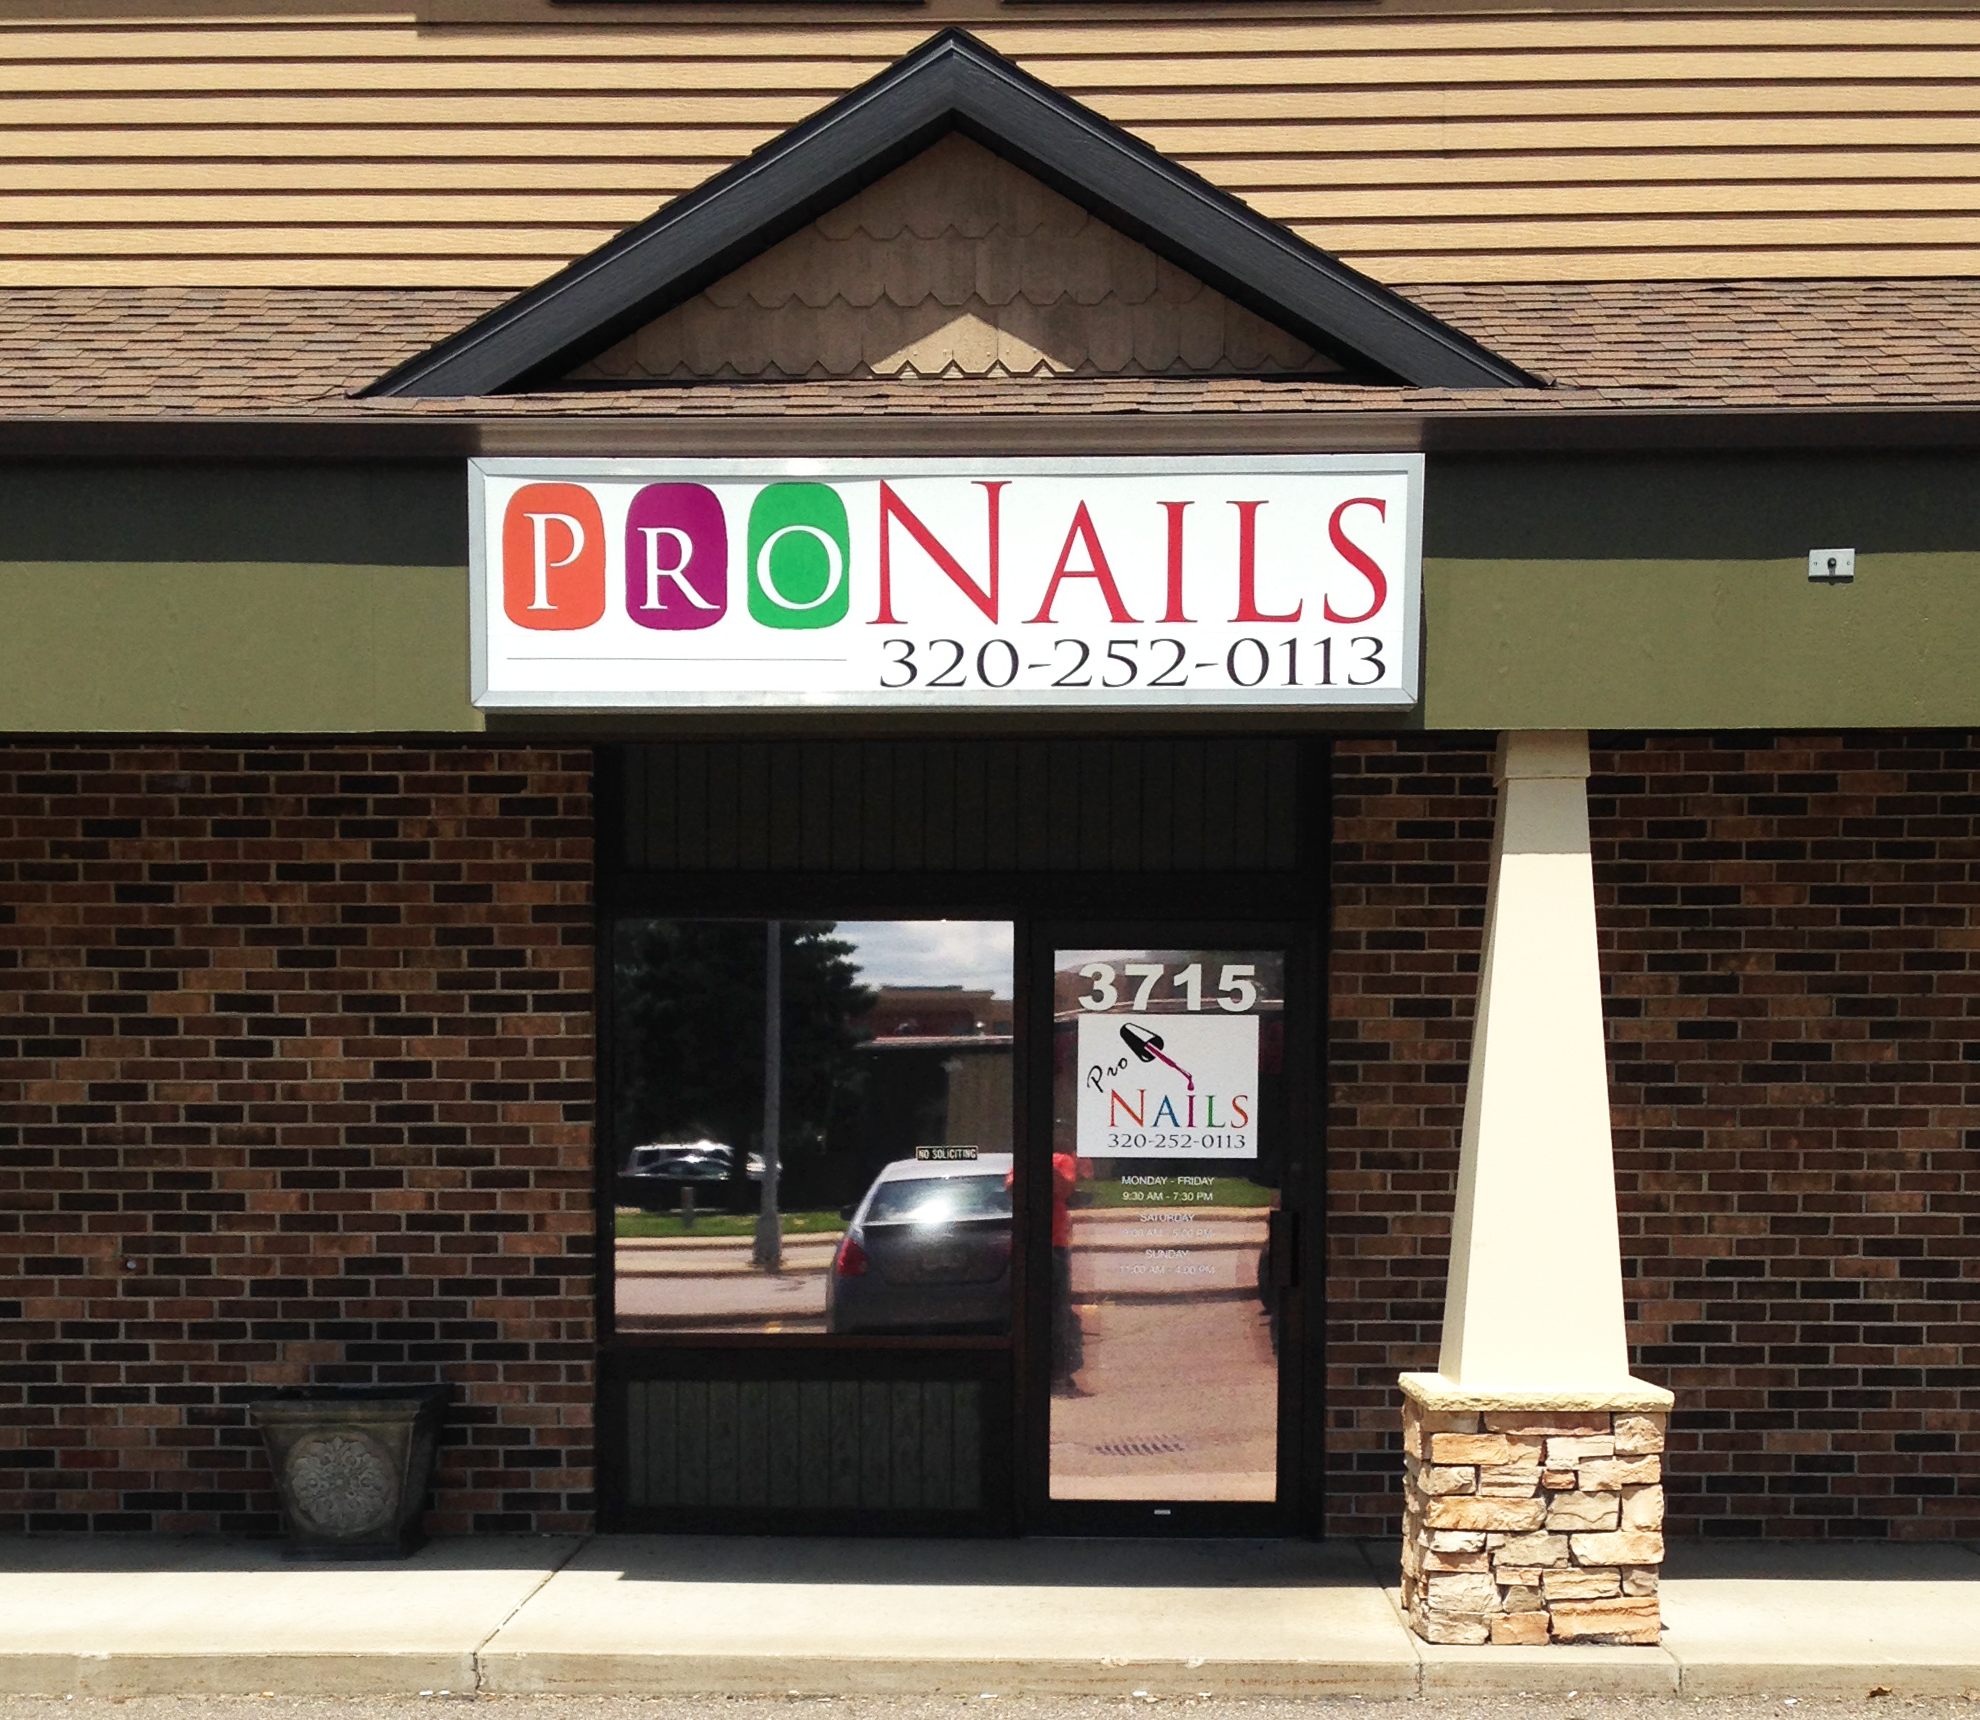 Custom Storefront Signs from Signmax